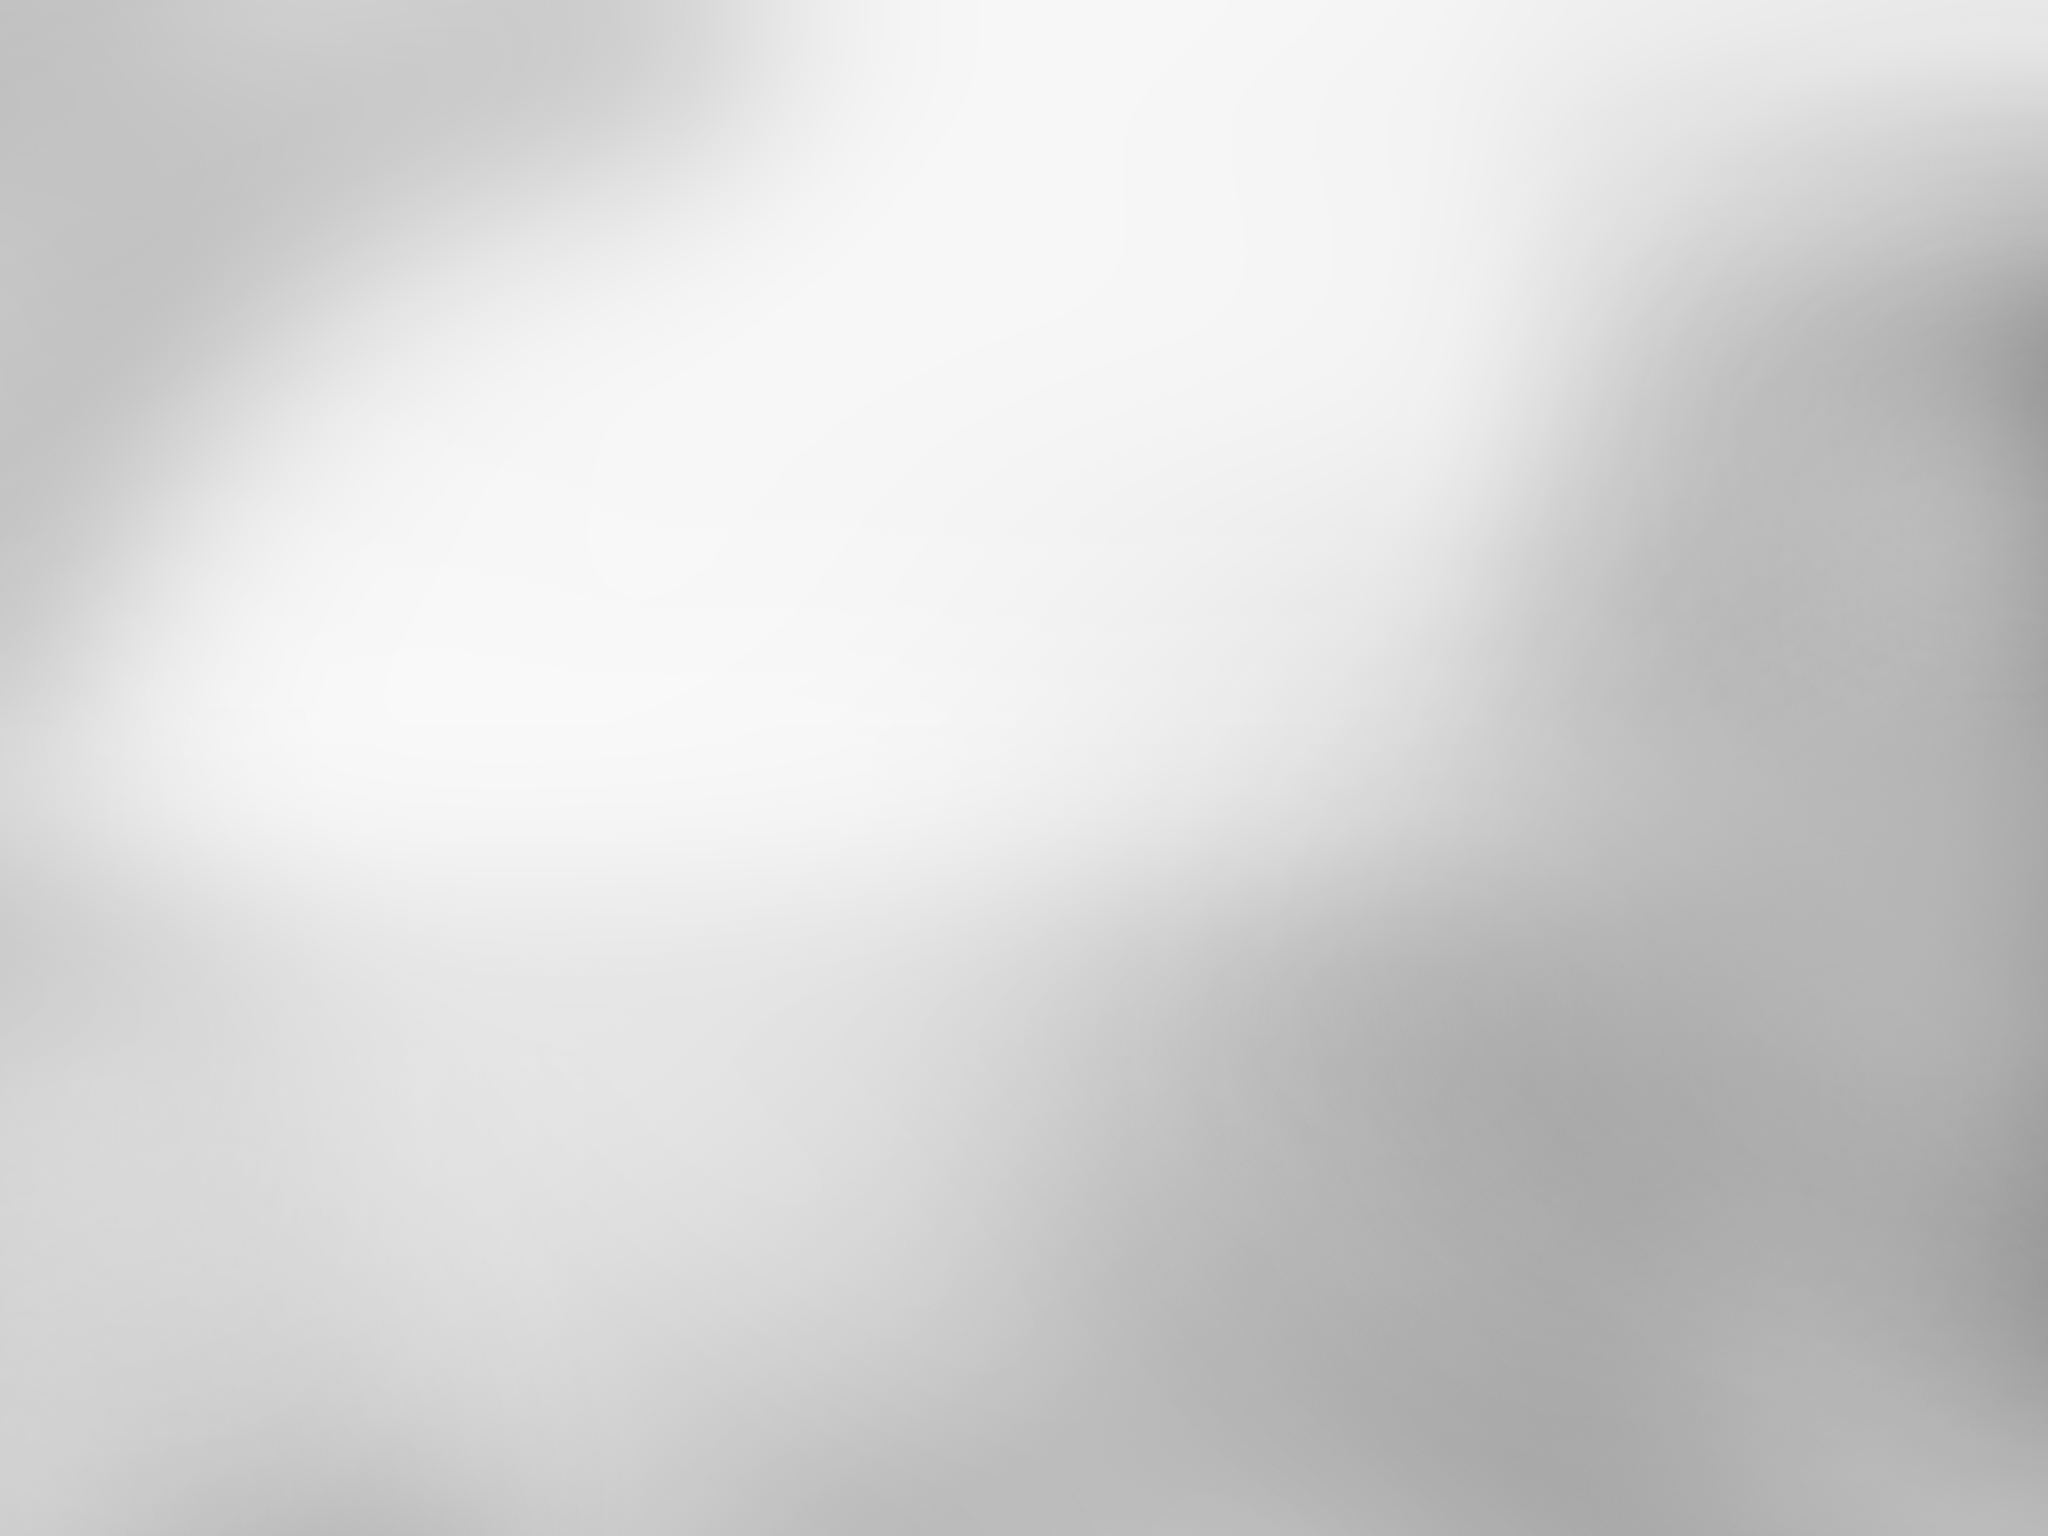 Silver Png File - Silver, Transparent background PNG HD thumbnail